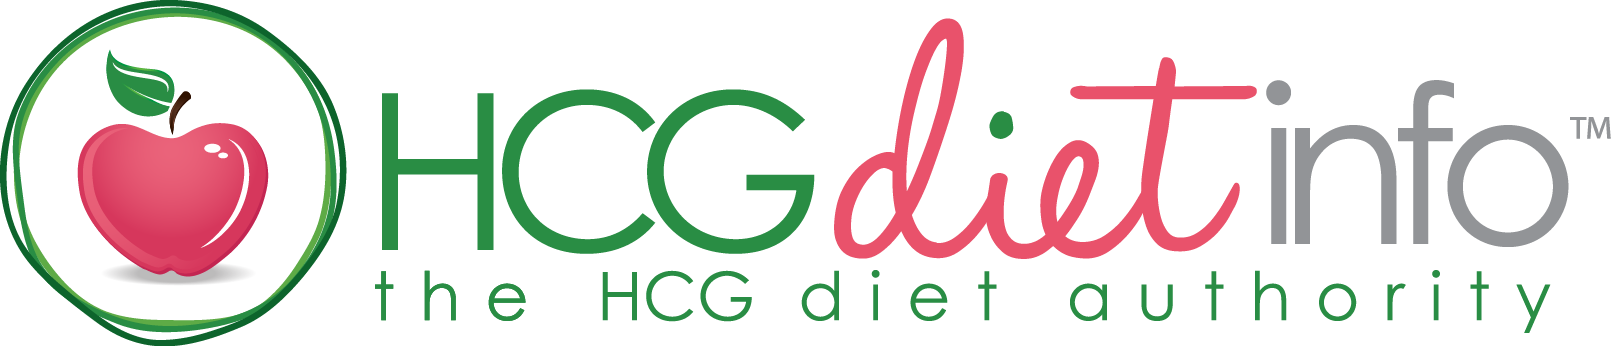 hCG Diet Info - The hcg diet plan authority